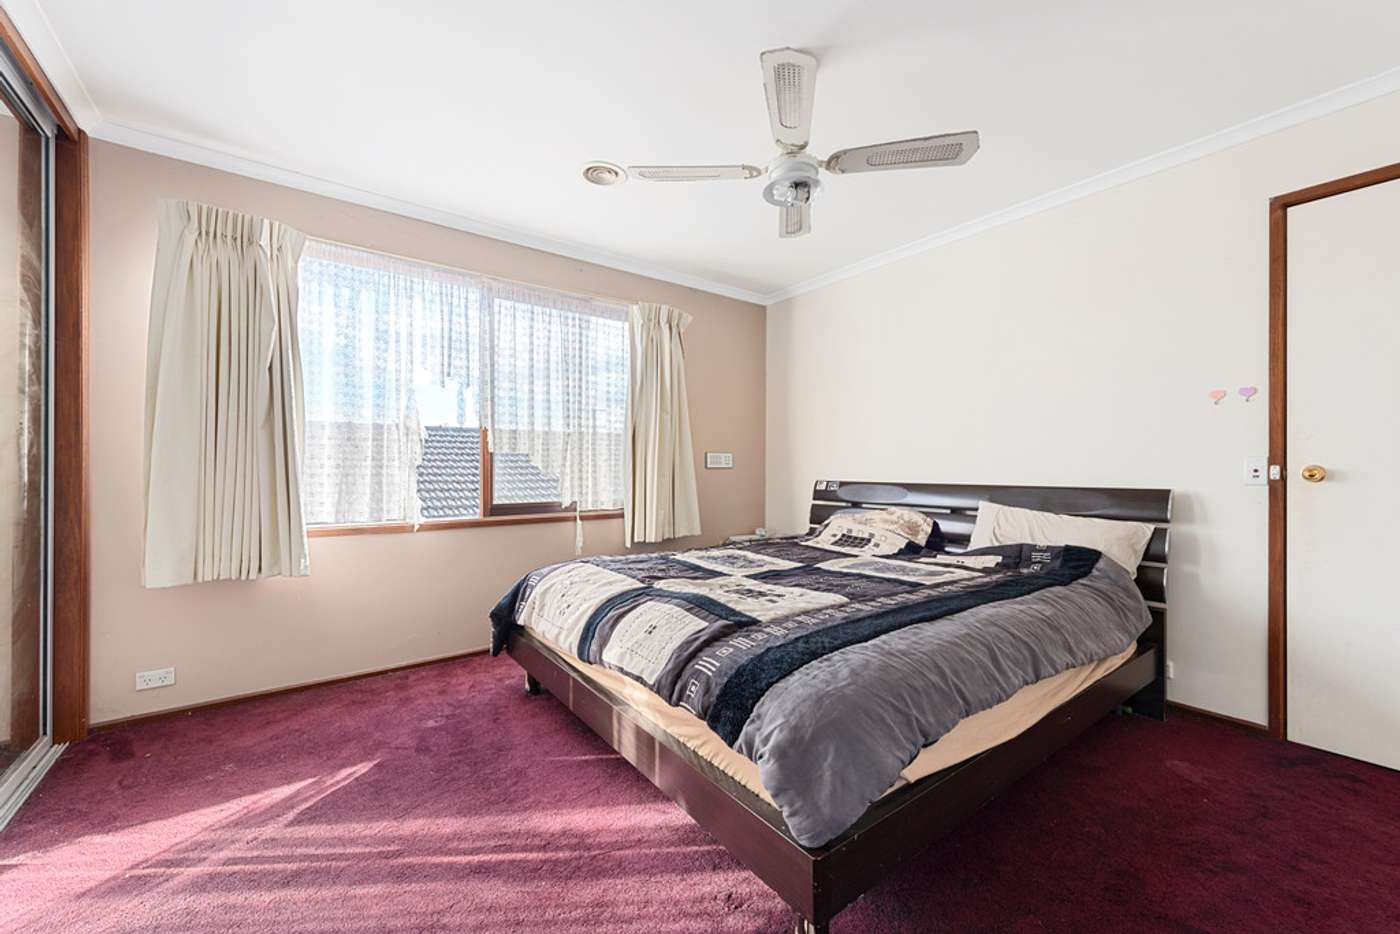 Fifth view of Homely house listing, 70 Cabinda Drive, Keysborough VIC 3173